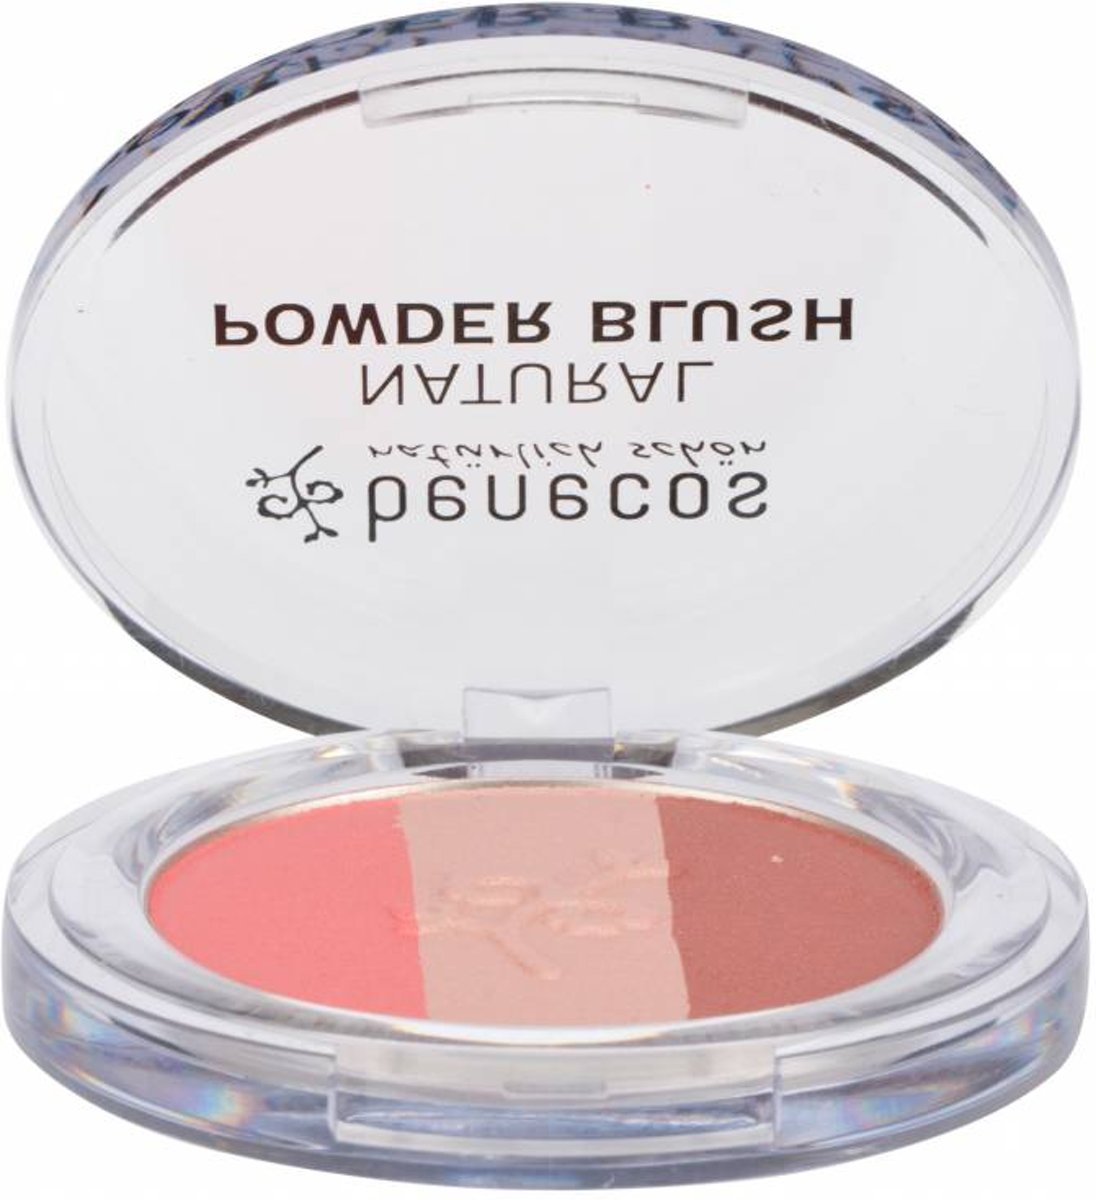 Compact blush fall in love